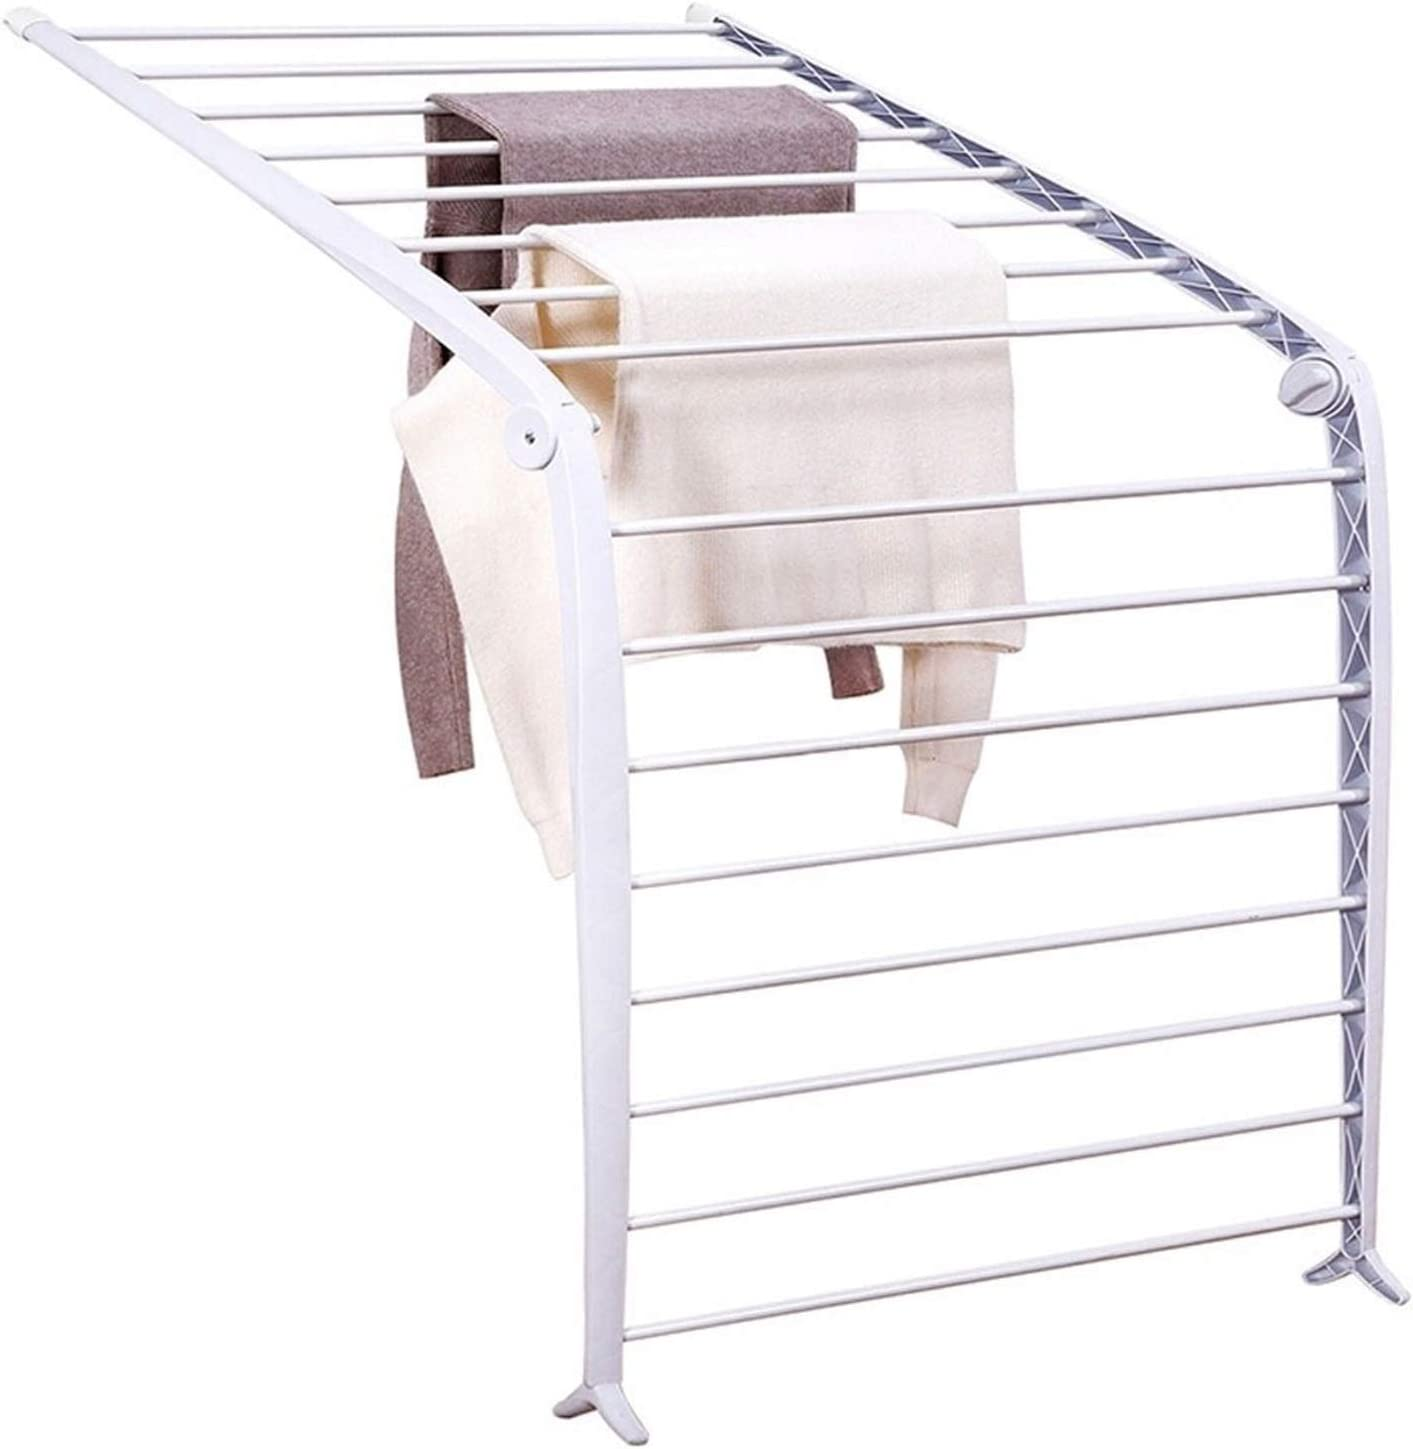 XIAOQIU 2021new shipping free Clothes Drying It is very popular Rack Floor for Laundry Foldin